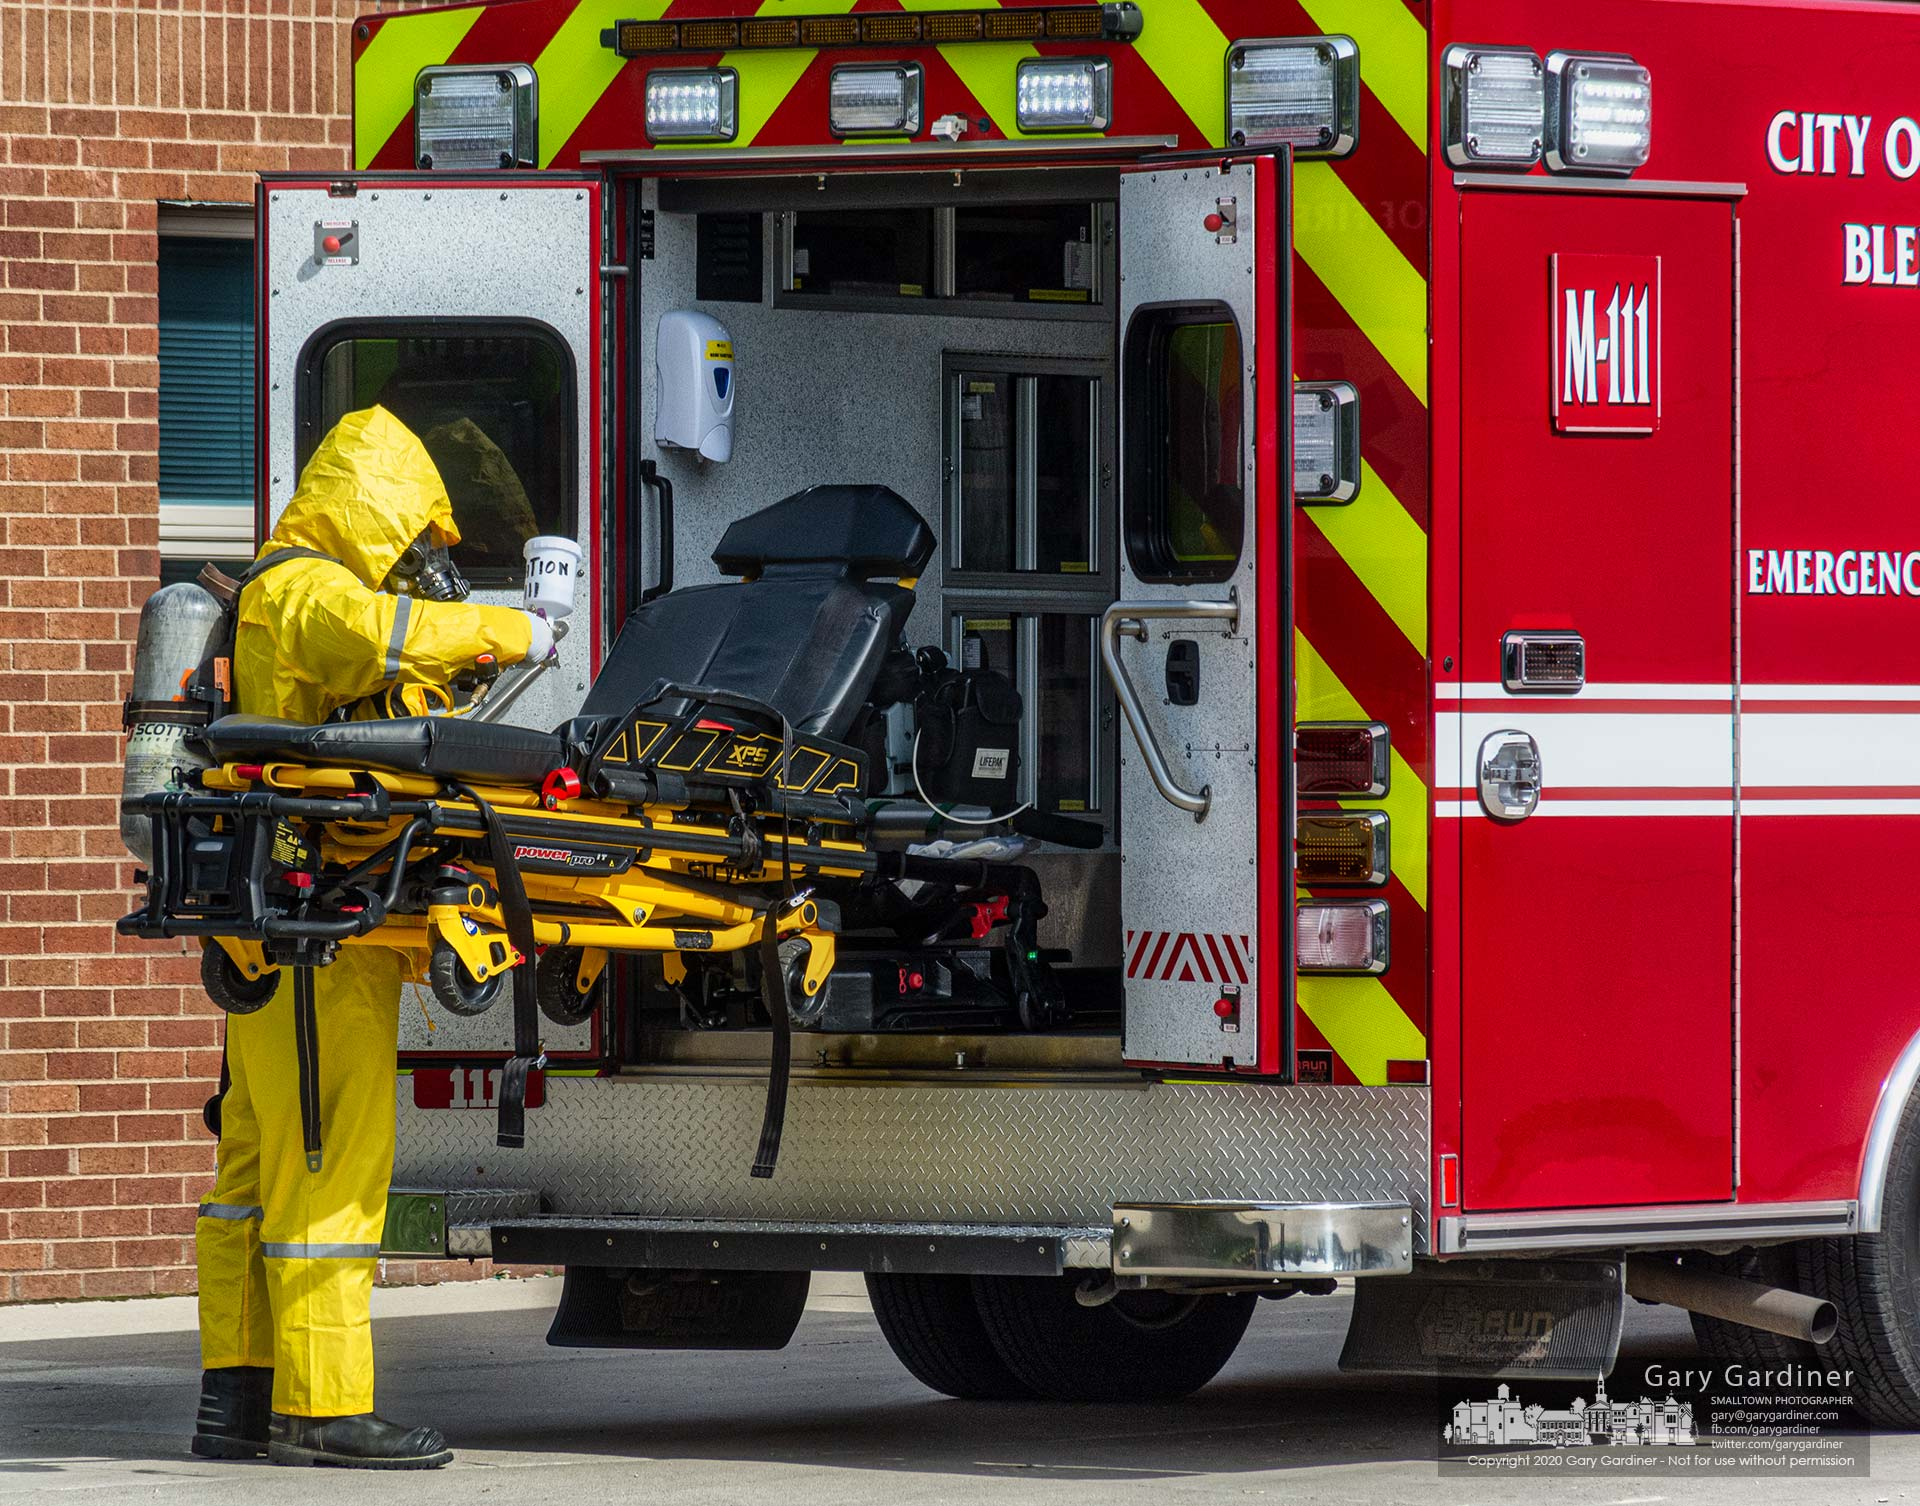 A Westerville firefighter decontaminates the Medic 111 truck after it transported a patient to the hospital. My Final Photo for May 4, 2020.